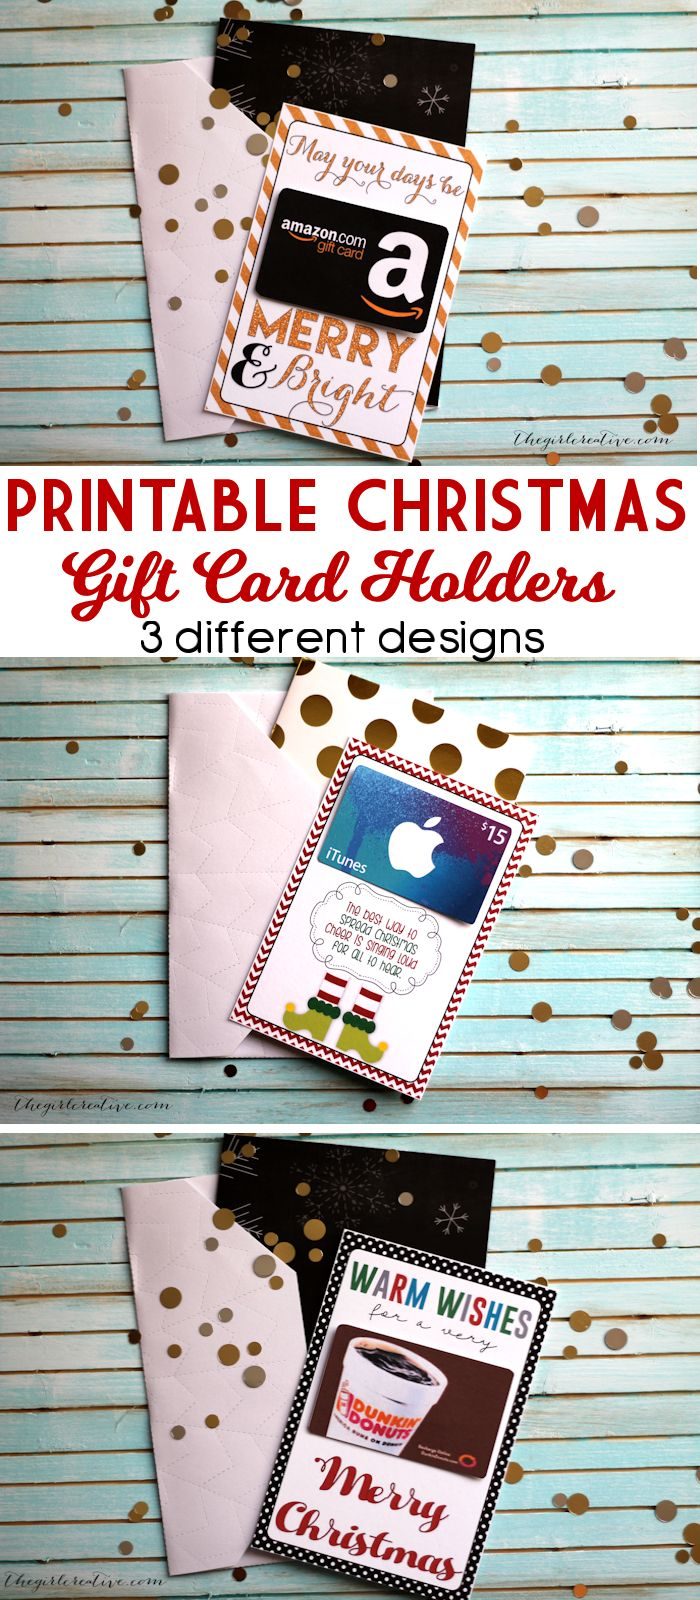 Gift card tree ideas pinterest - Free Printable Christmas Gift Card Holders Perfect For Neighbor Or Teacher Christmas Gifts